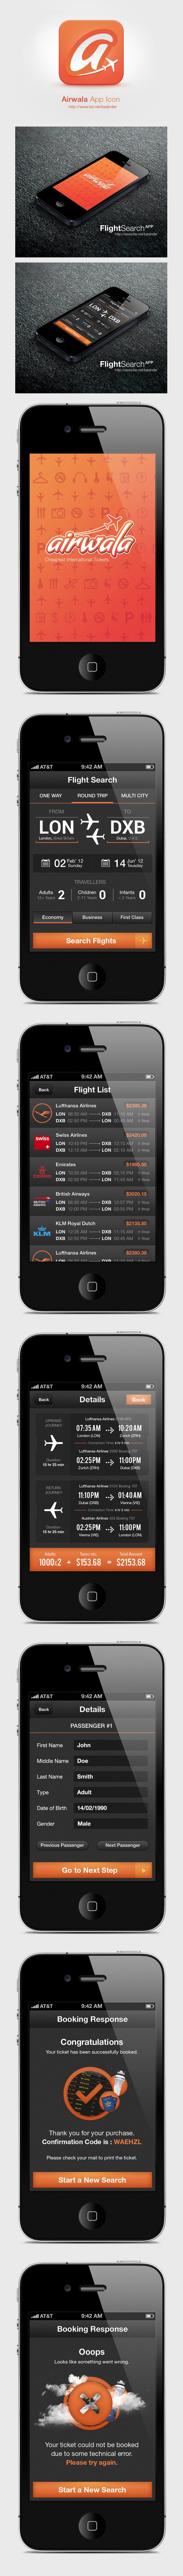 "Flight Search App - Airwala, via Behance *** "" I designed the complete UI and UX for Airwala.com . Project duration was about 1 month and I am quite satisfied with the output, and so is my client. "" Barjinder Singh"